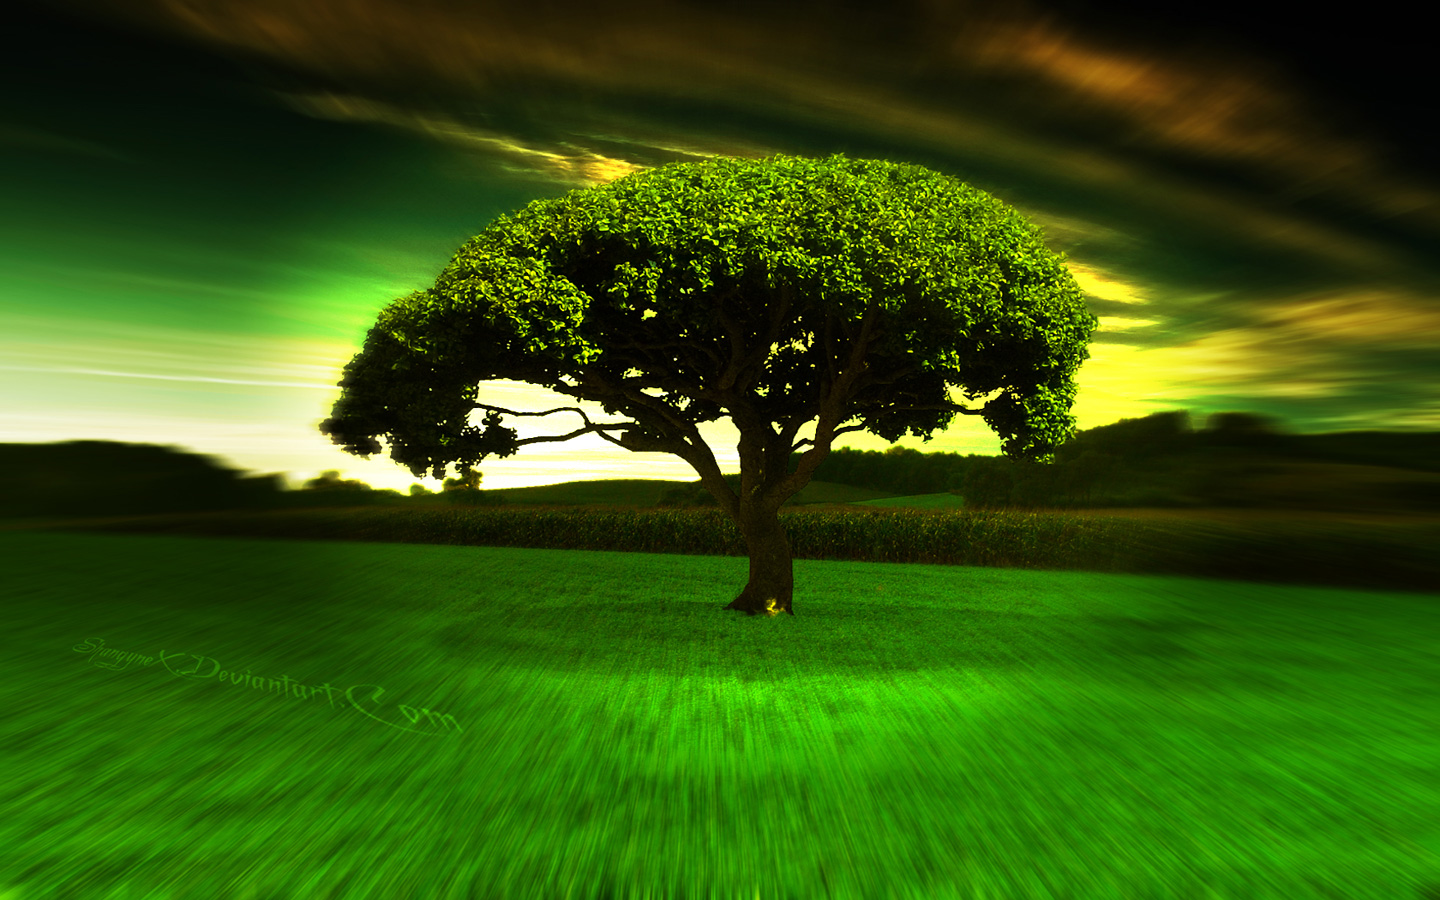 Free Download 40+ Cool Wallpapers 2013 Full Hd(1080p